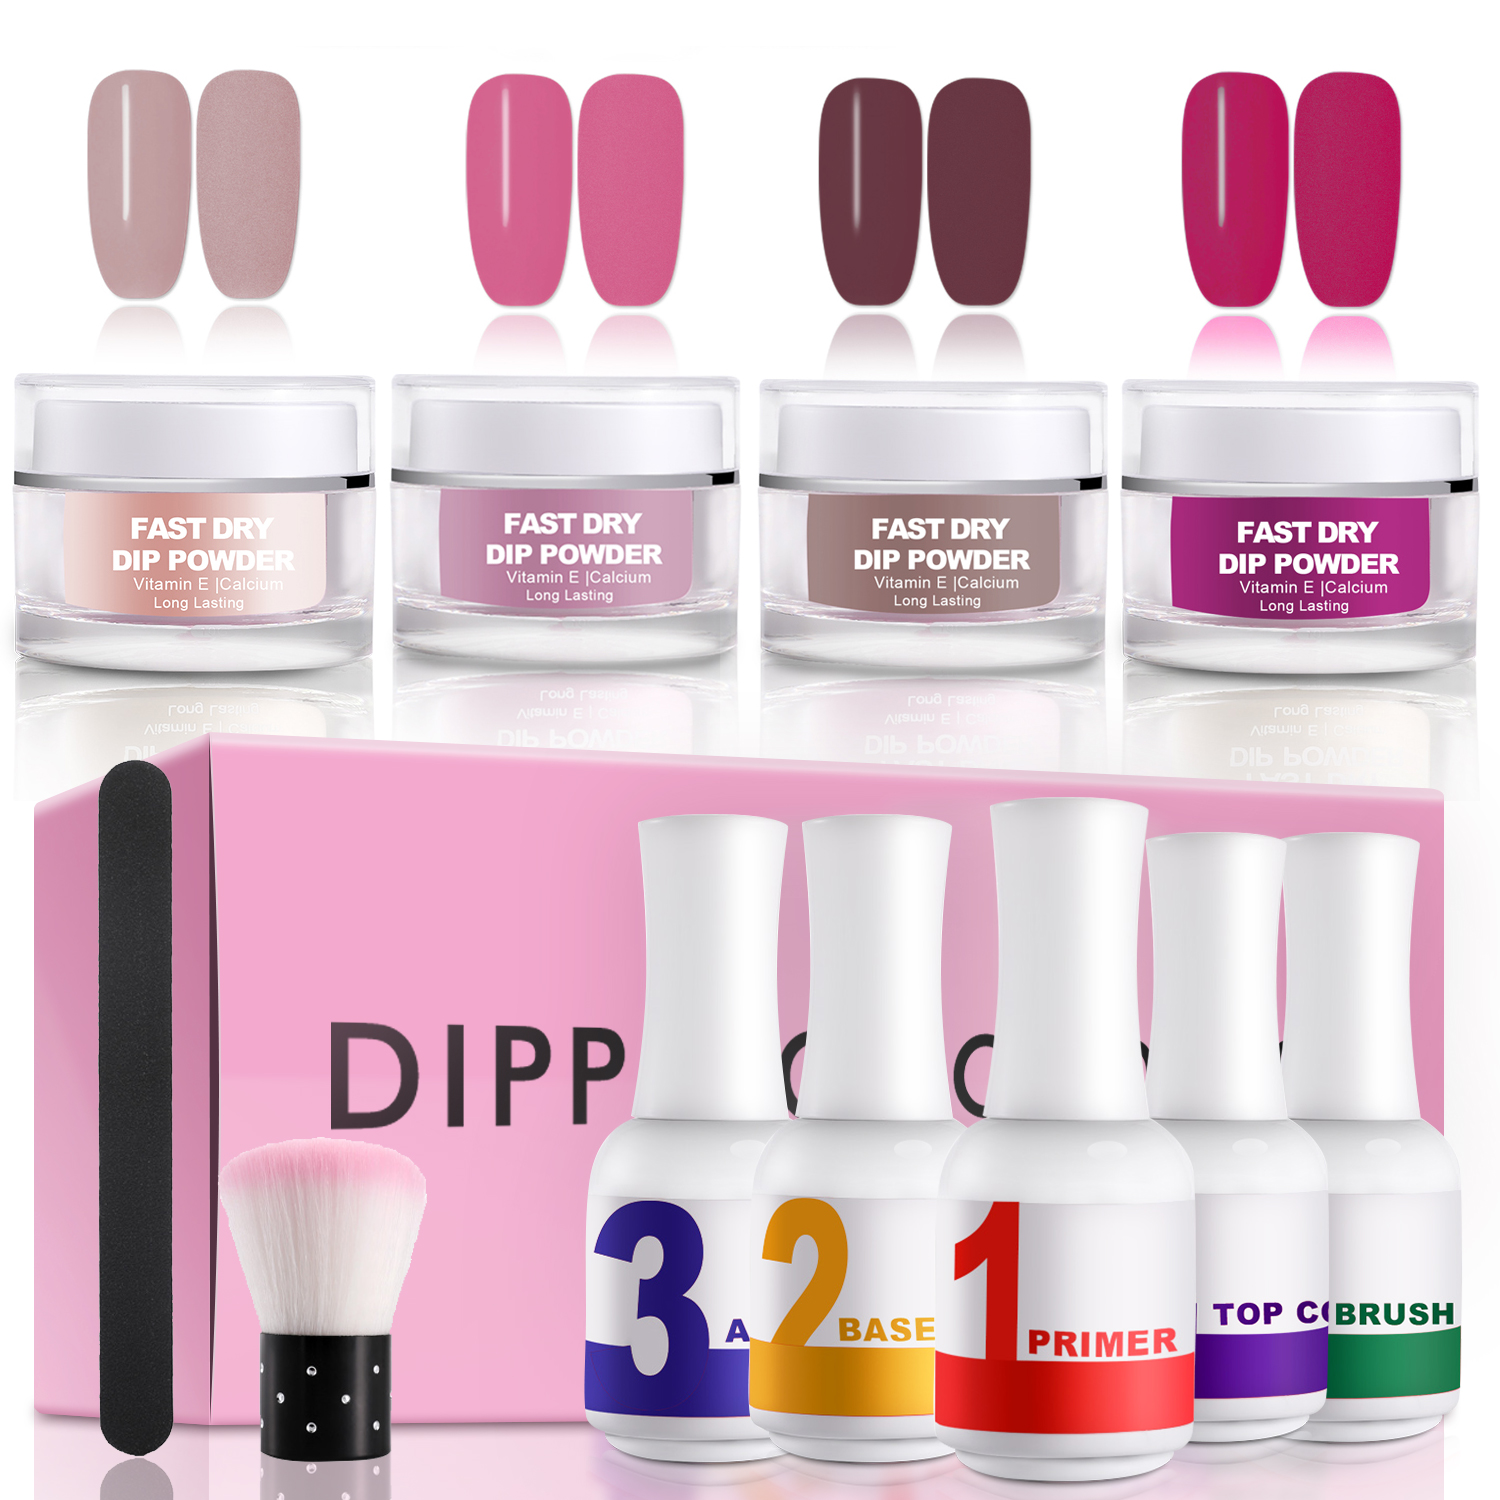 Dip Nail Powder Nail Starer Kit Ejiubas Acarylic Dipping System Fast Dry Dip Powder kit Acrylic Nail Dipping Powder Manicure Nail art set